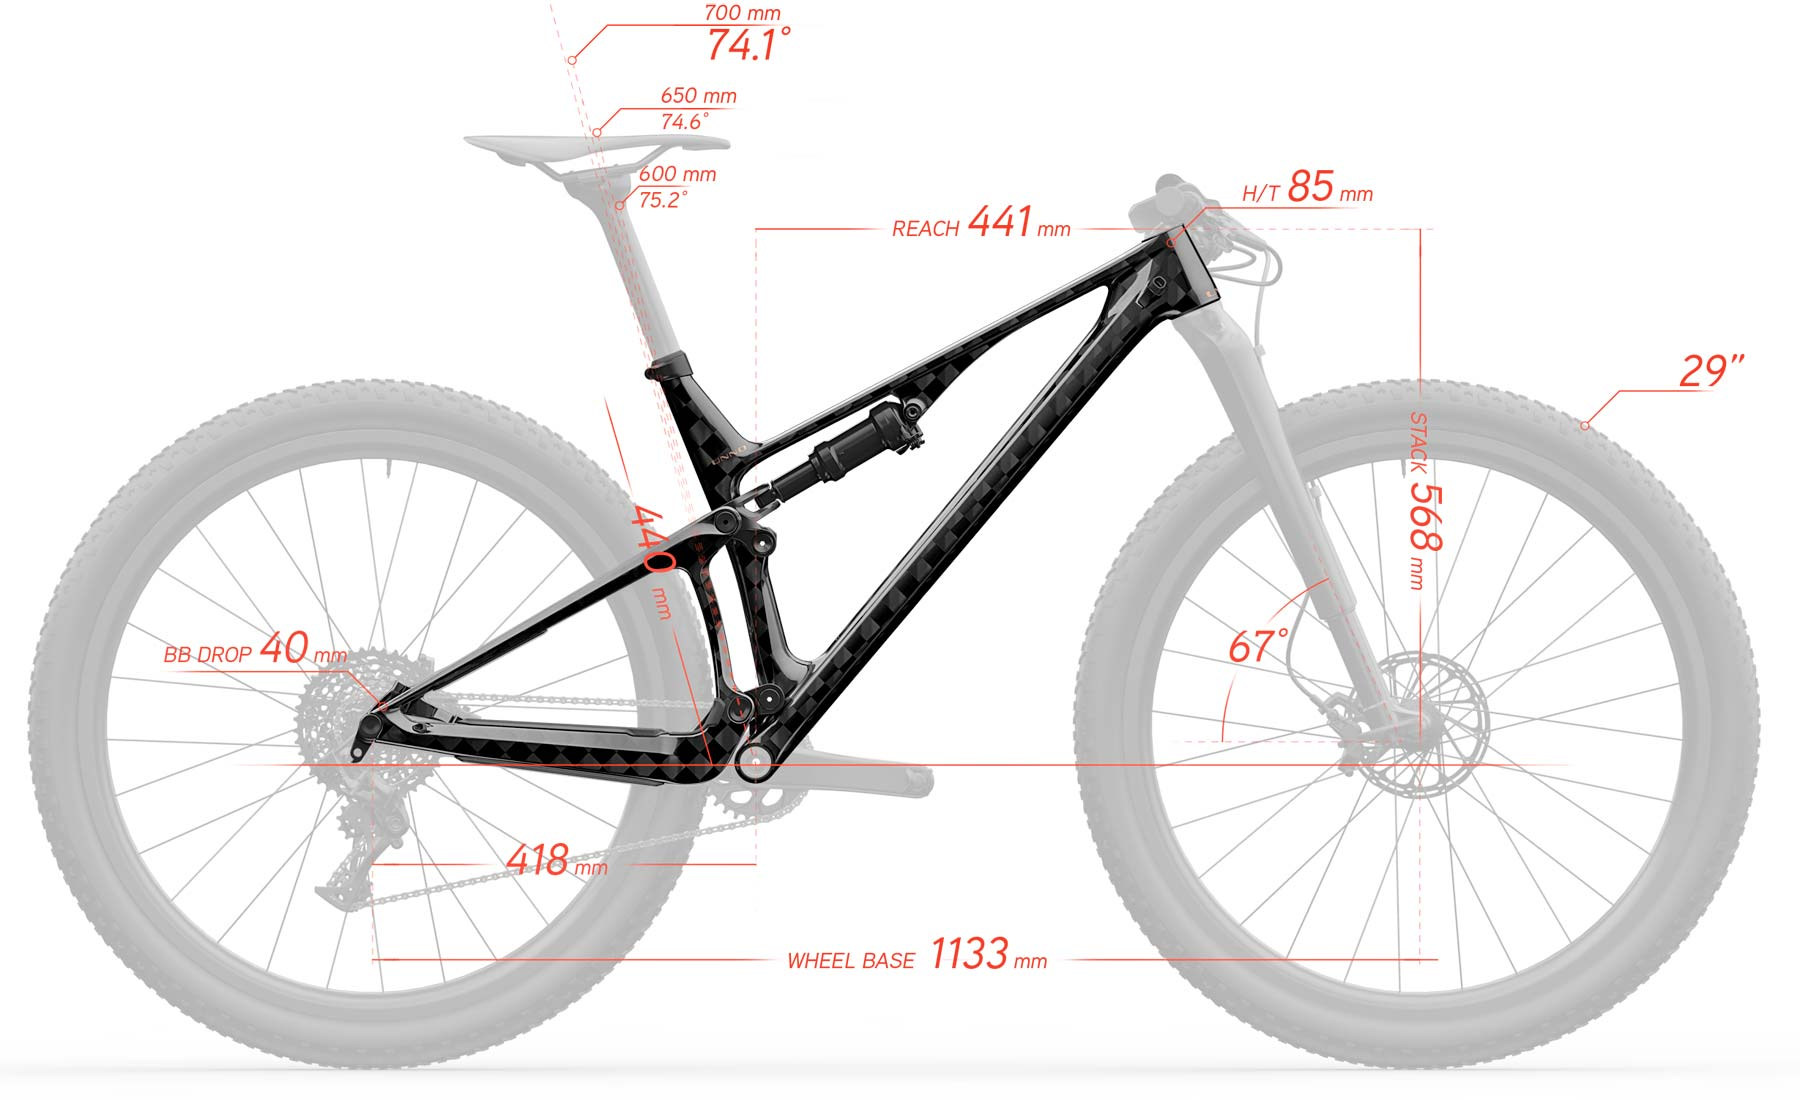 Unno Horn 100mm XC bike, limited edition lightweight carbon short-travel cross-country race mountain bike geometry